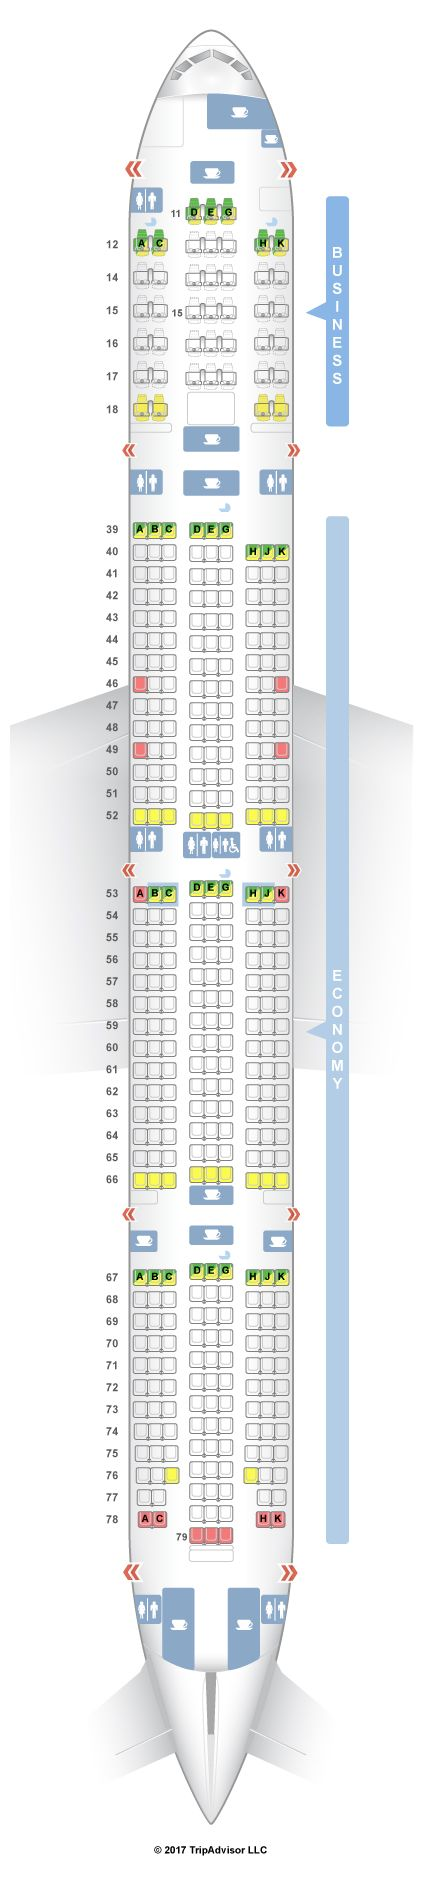 SeatGuru Seat Map Cathay Pacific Boeing 777-300 (73Z) New Regional